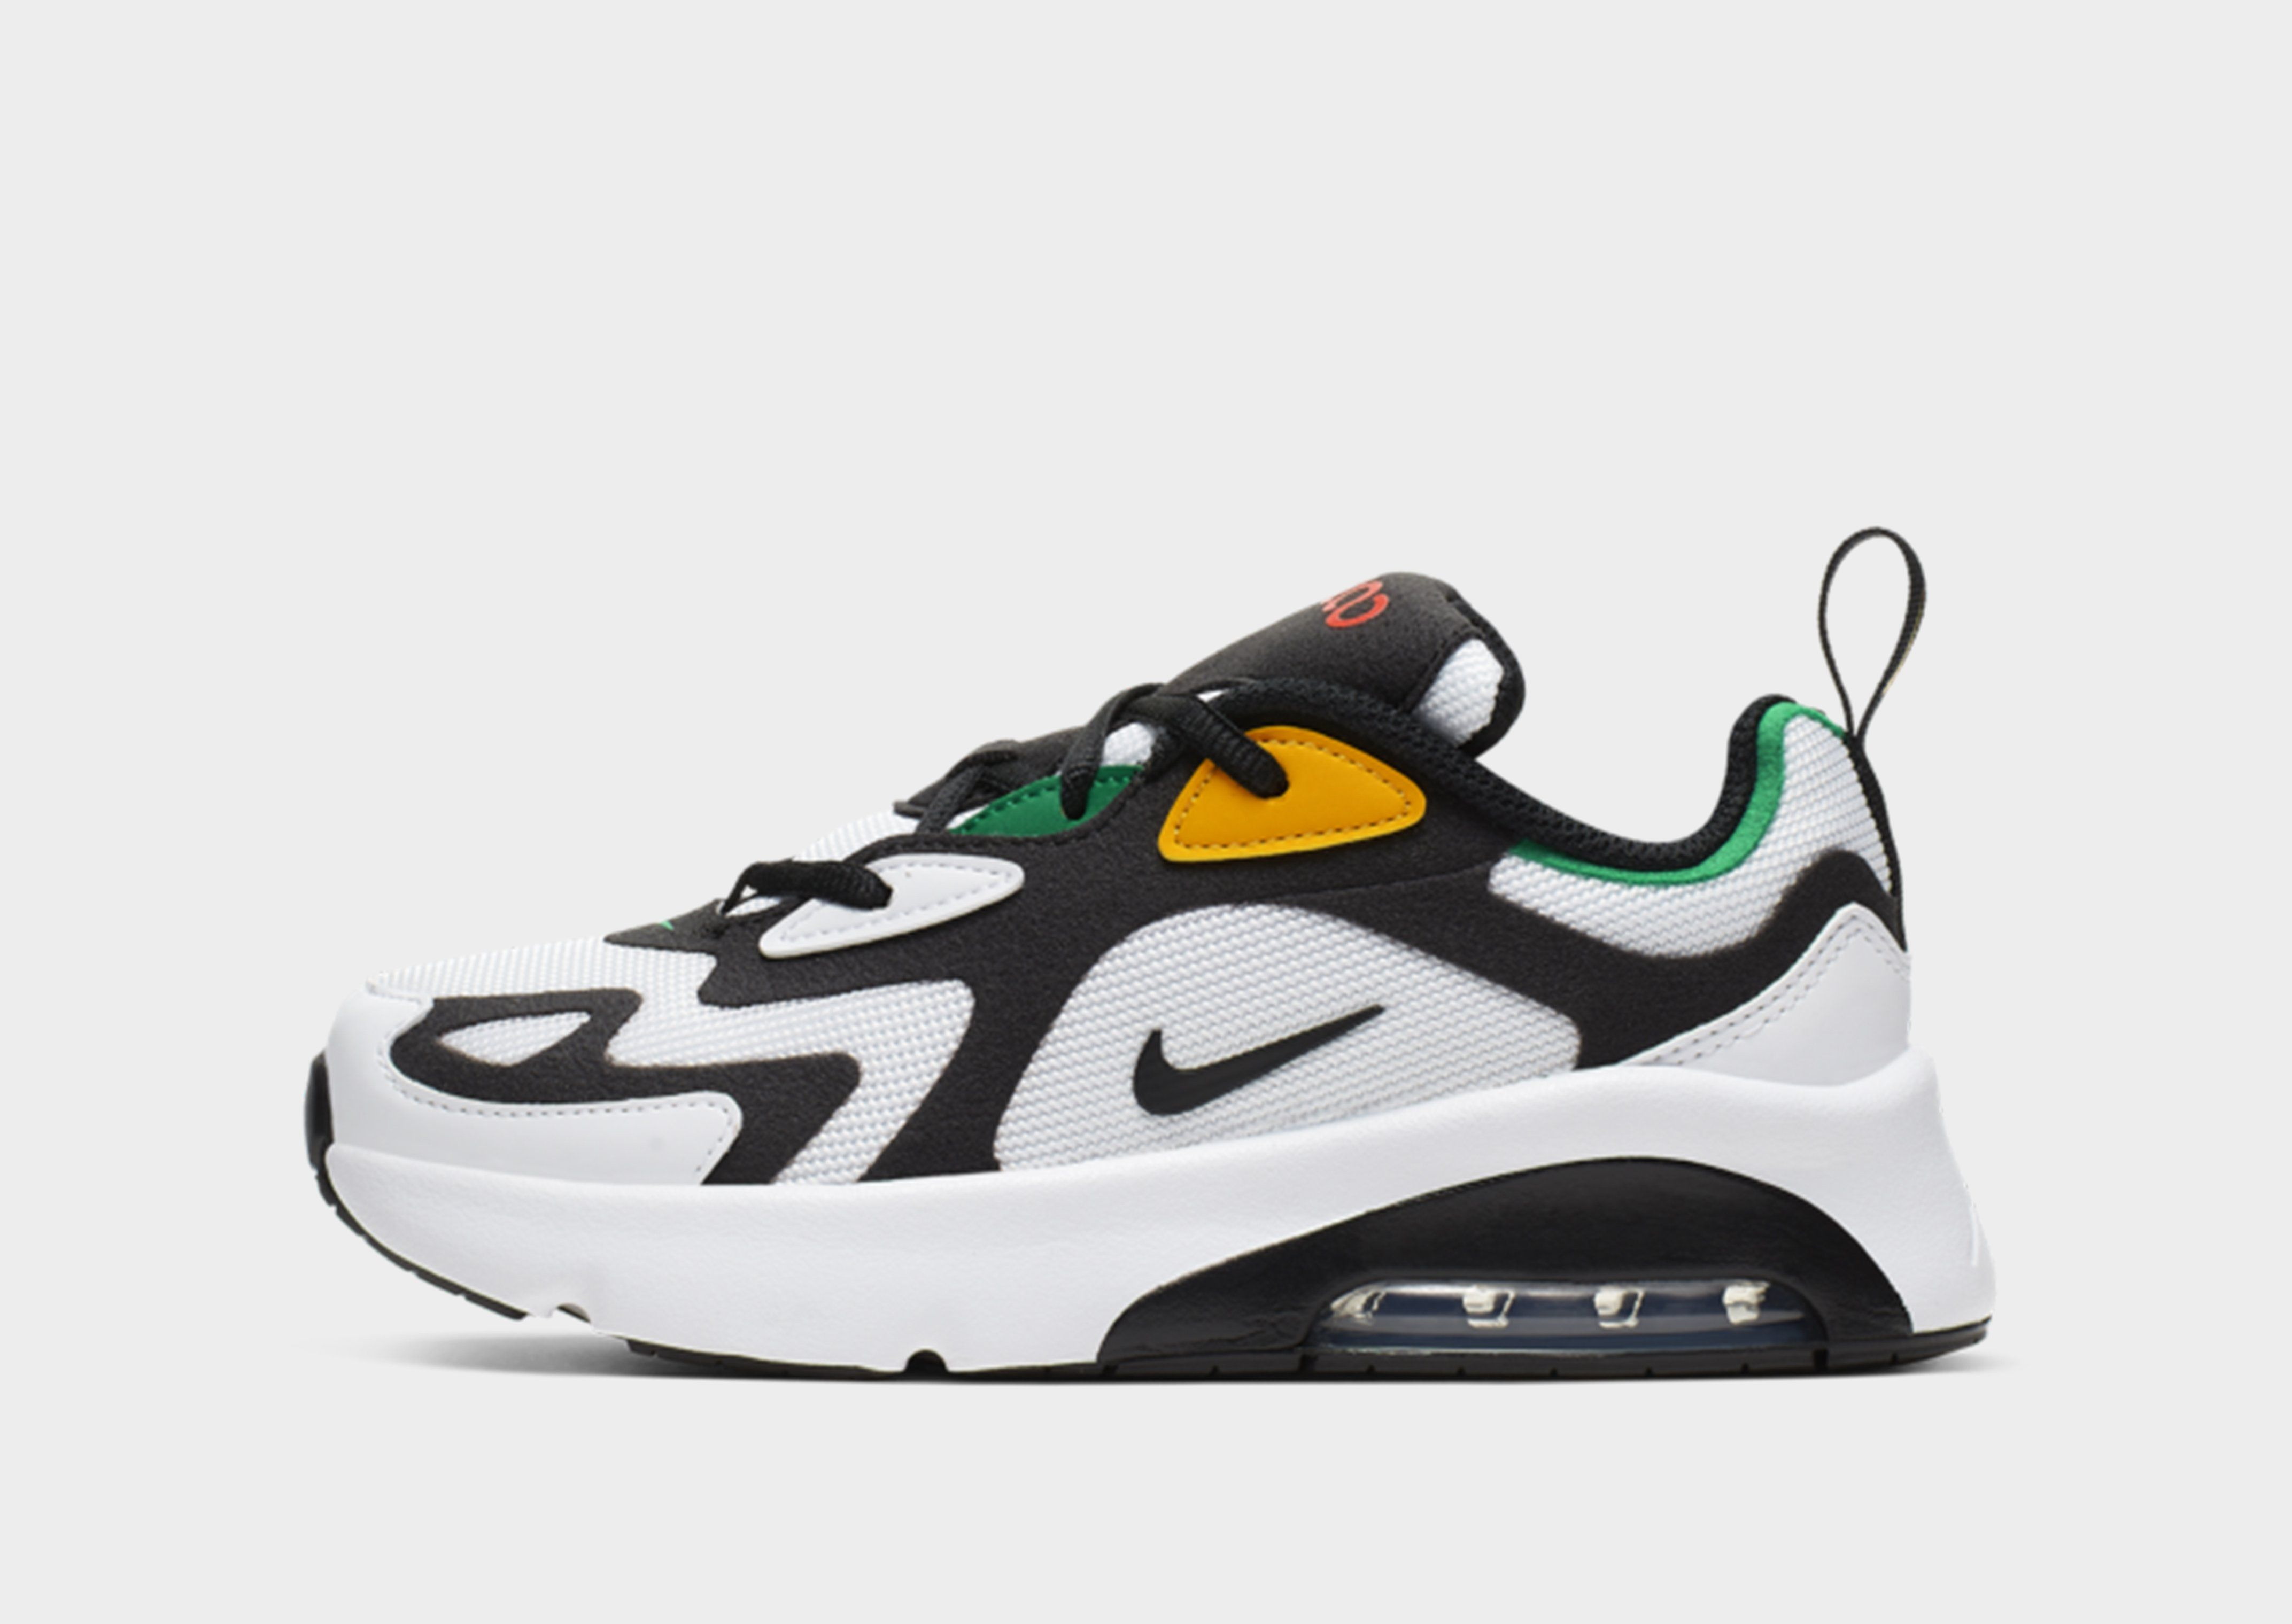 tout neuf 3edad a1532 Nike Air Max 200 Younger Kids' Shoe | JD Sports